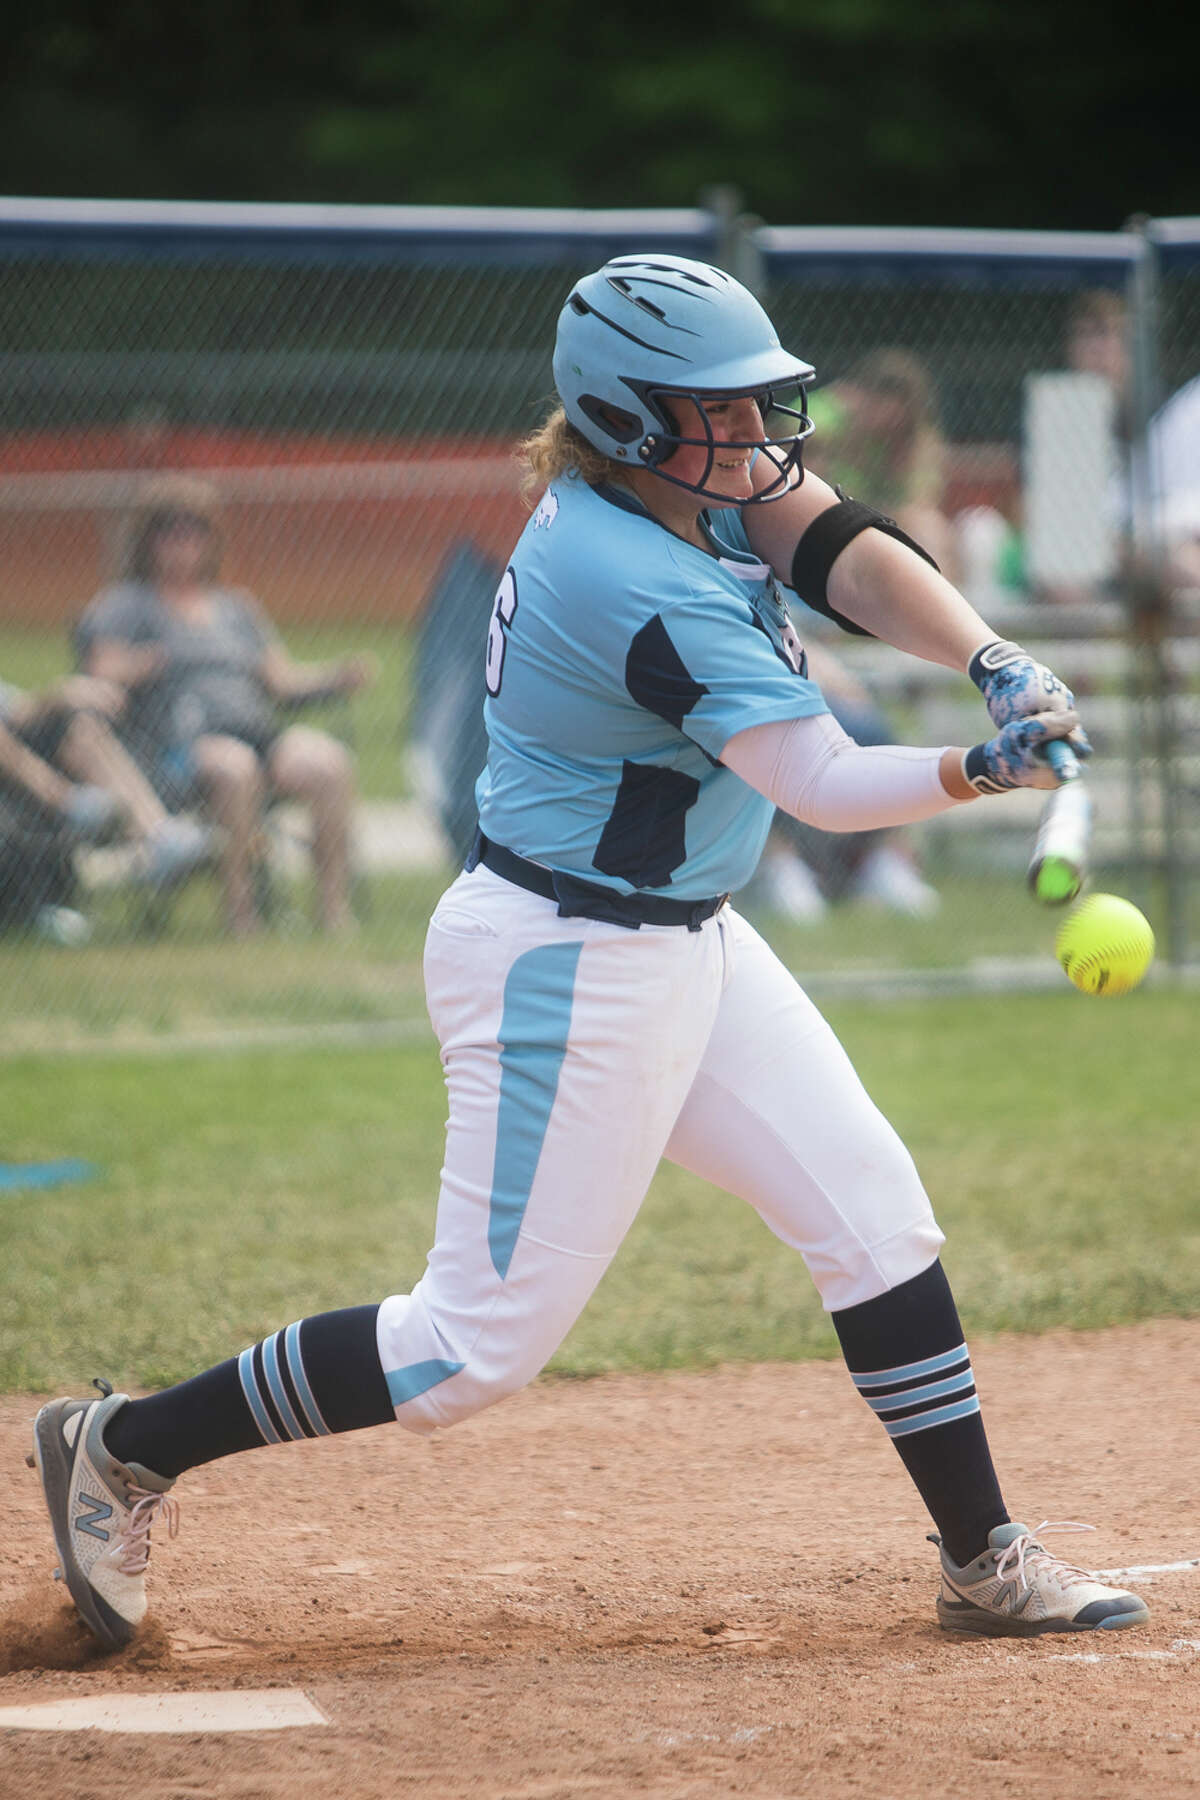 Meridian's Ashtyn Kelly swings on a pitch during the Mustangs' game against Beaverton Friday, May 21, 2021 at Meridian Early College High School. (Katy Kildee/kkildee@mdn.net)